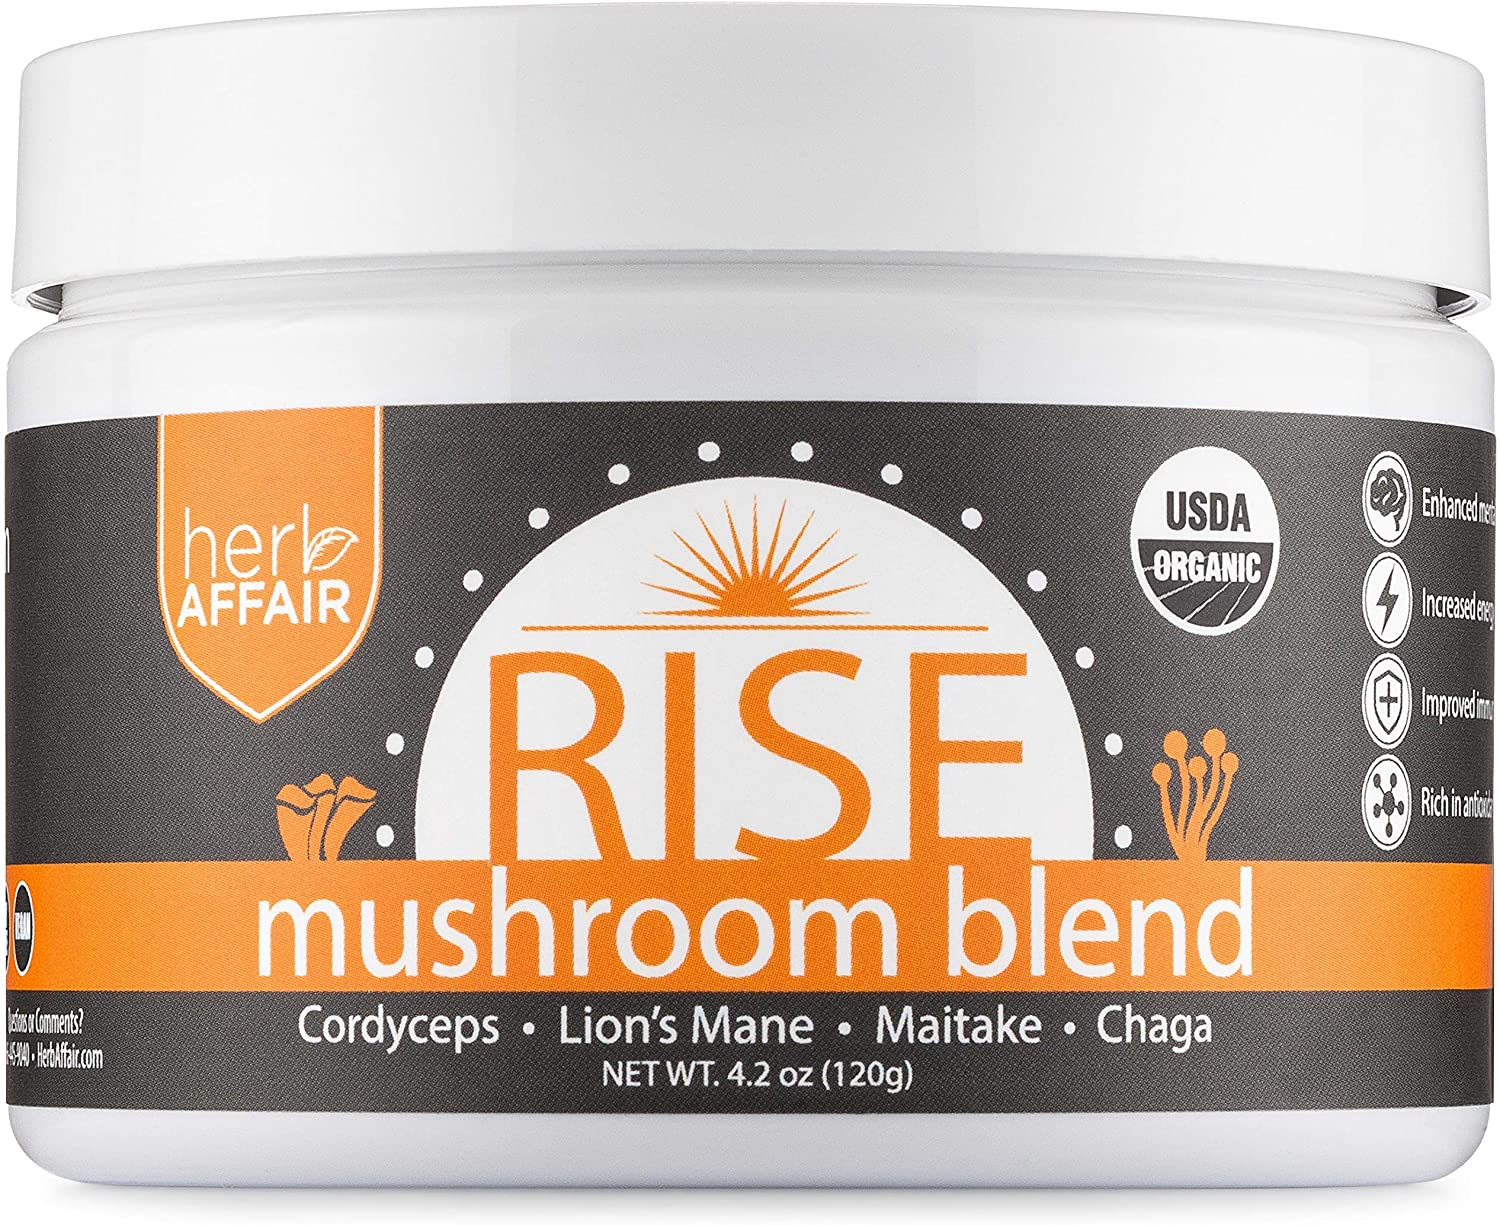 Mushroom Powder Supplement - Organic Full Spectrum Medicinal Mushroom Complex - Lions Mane, Chaga, Cordyceps and Maitake Shrooms - Mix in Coffee or Smoothie - Helps Focus, Energy and Immune System